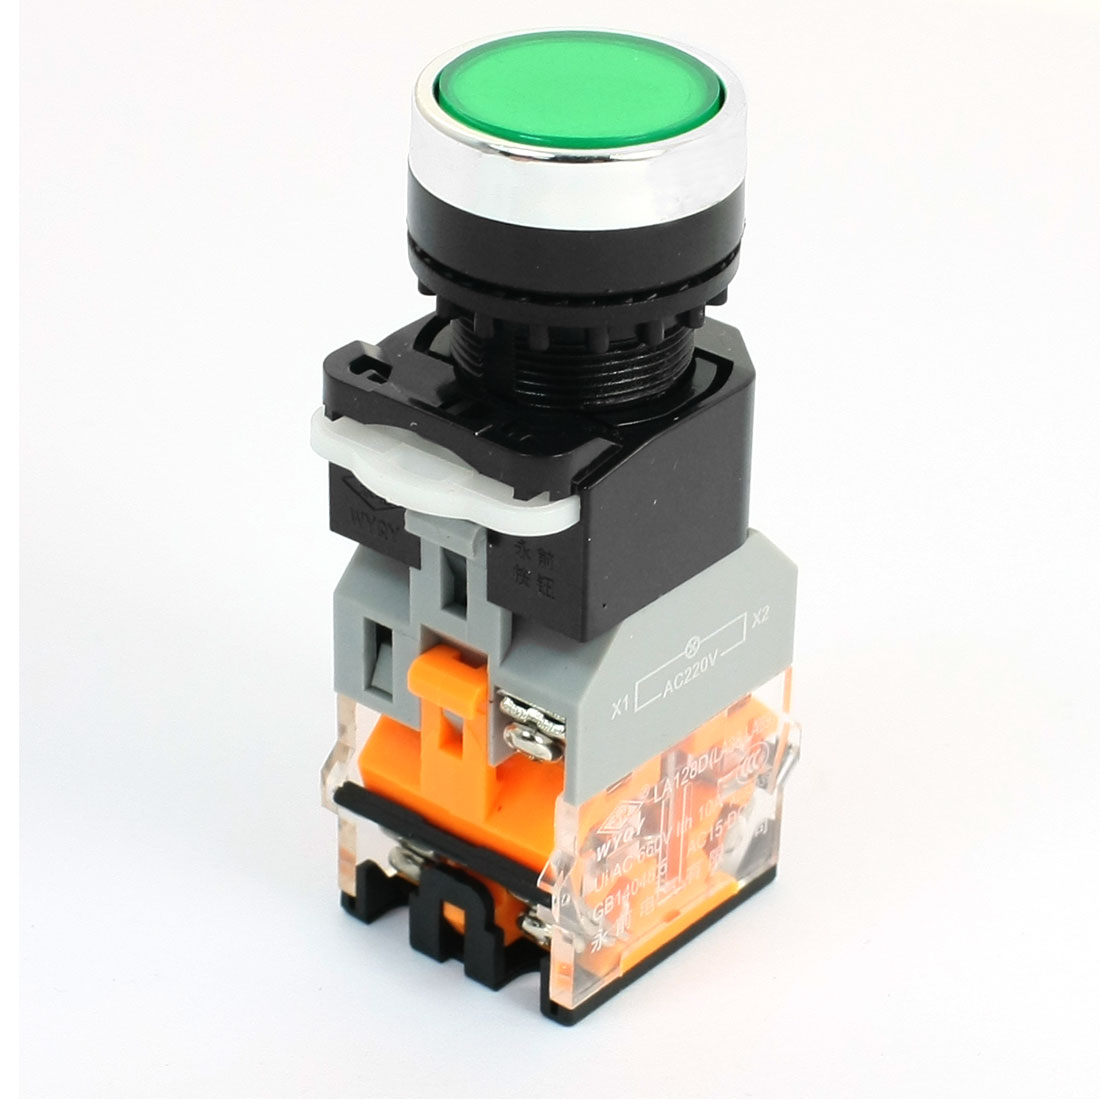 Machine Start DPST Momentary 1NO+1NC Green Lamp Push Button Switch 660V 10A